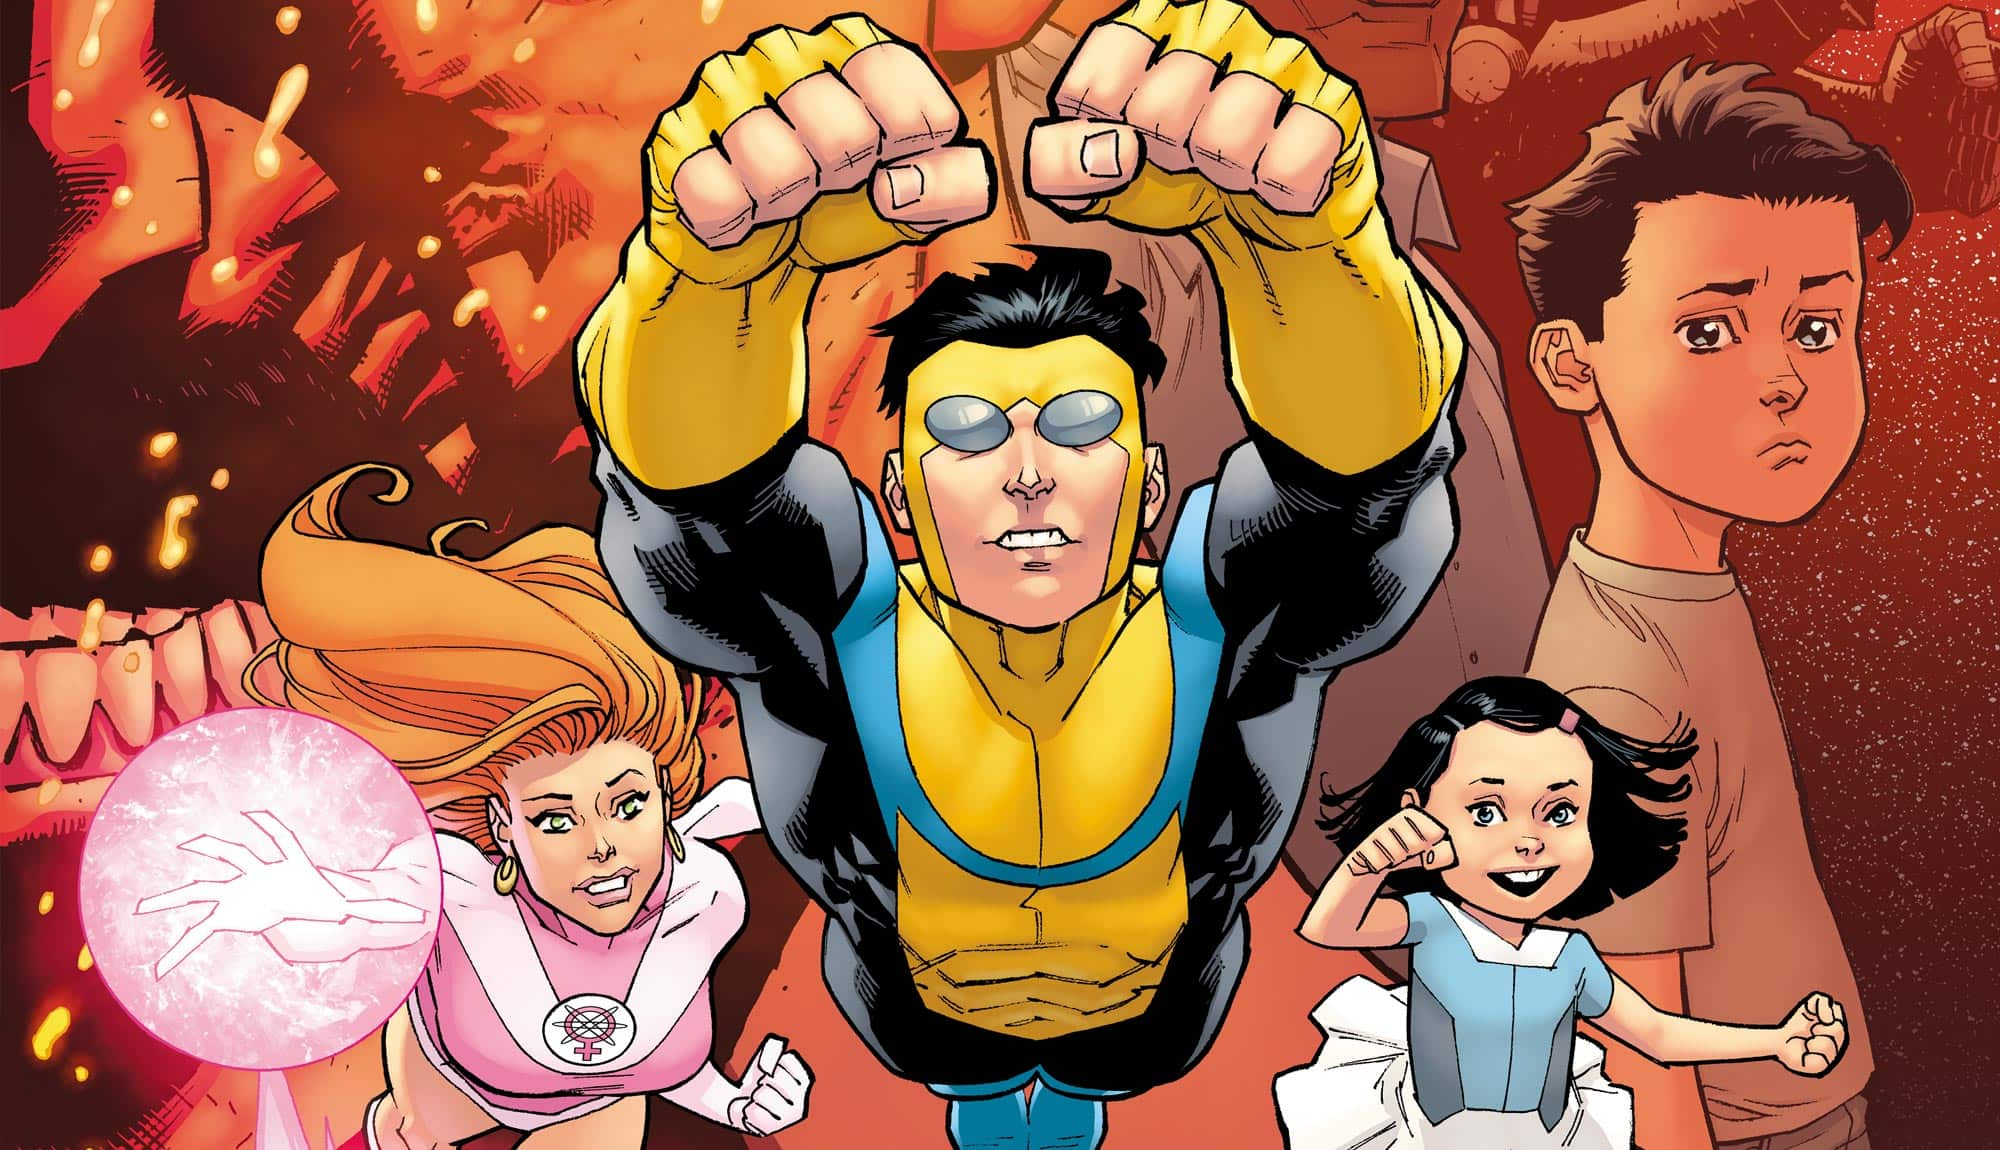 Invincible TV show Release Date Cast Plot Trailer and What fan theories you should know??, Invincible TV Show Release Date, Cast, Plot, Trailer And More